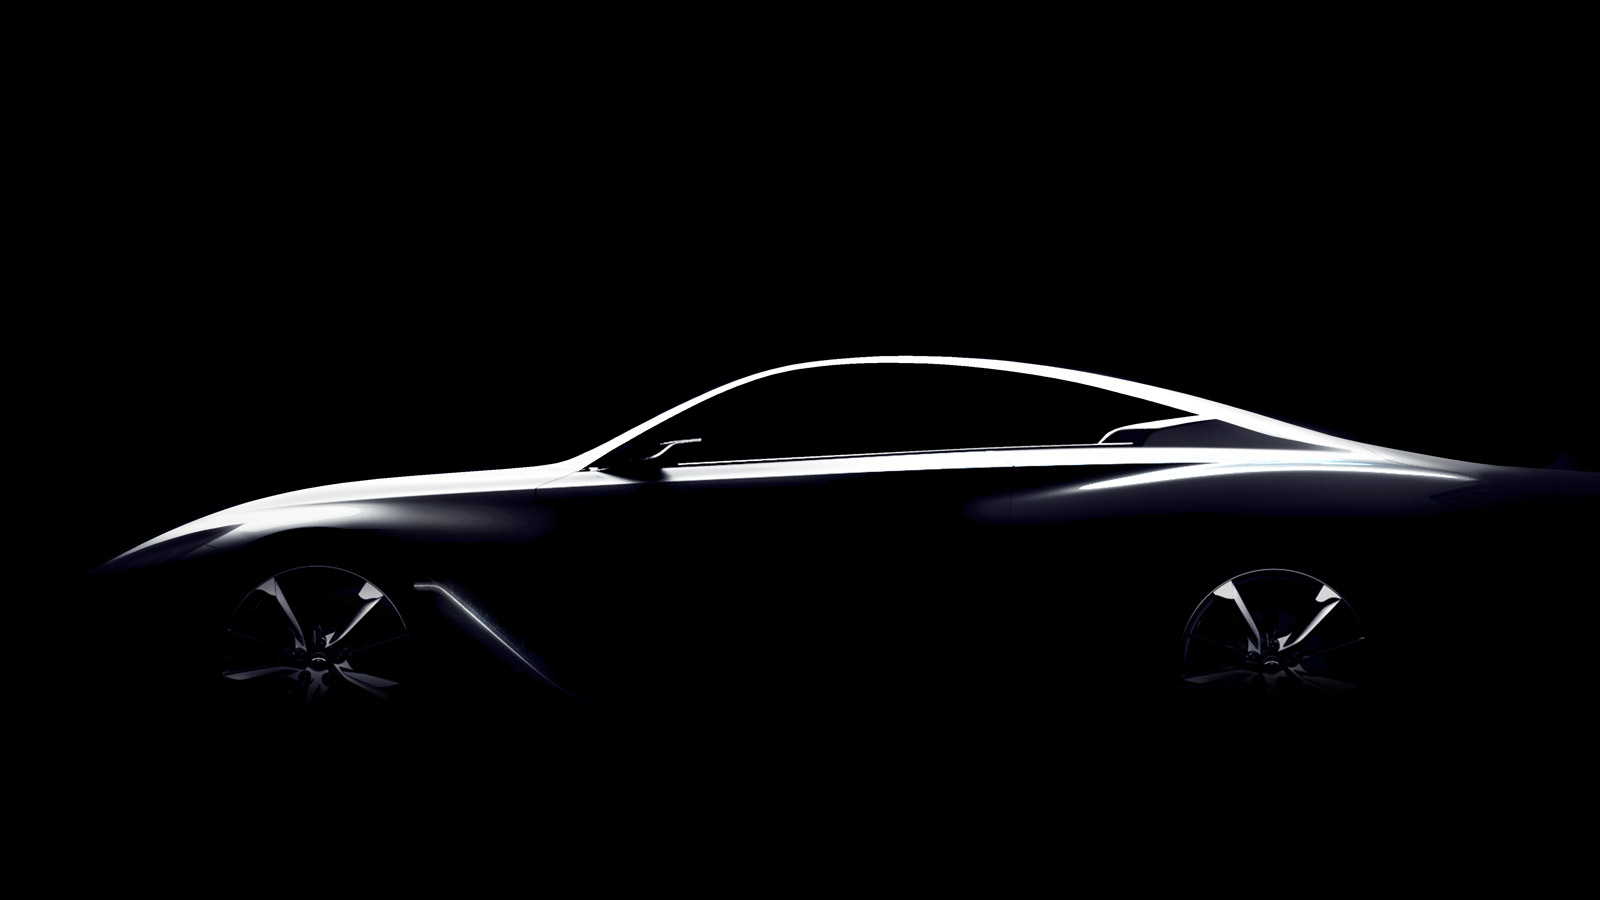 Hd Flat Black Muscle Car Wallpapers Infiniti Teases Q60 Coupe Concept